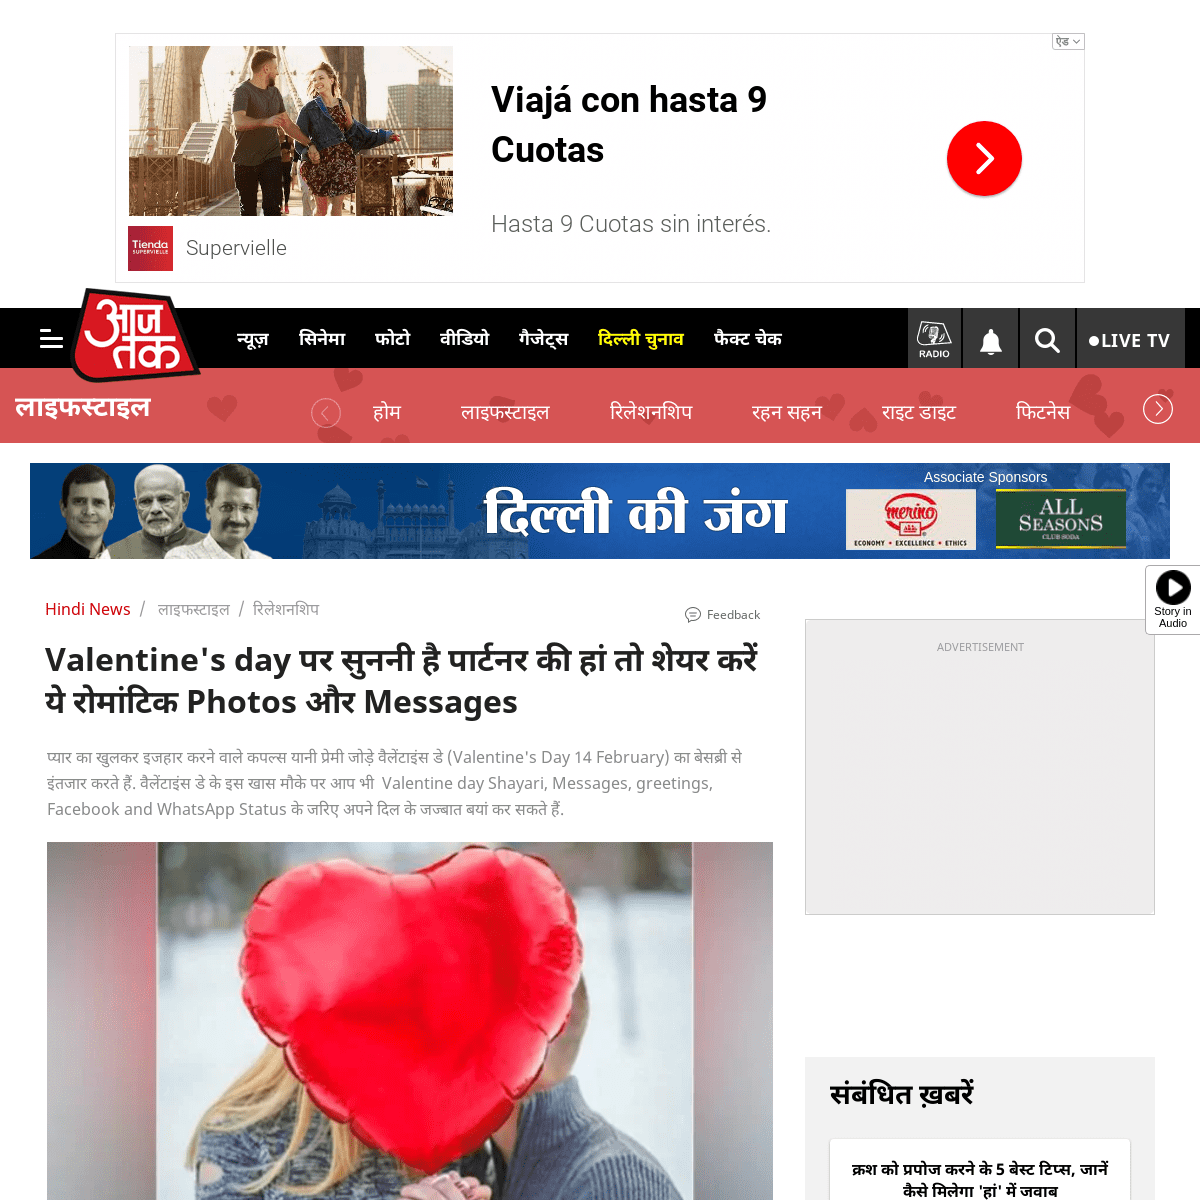 ArchiveBay.com - aajtak.intoday.in/story/valentine-day-2020-messages-shayeri-quotes-greetings-whatsapp-facebook-status-love-images-lbs-1-1163618.html - Valentine's day पर सुननी है पार्टनर की हां तो शेयर करें ये र